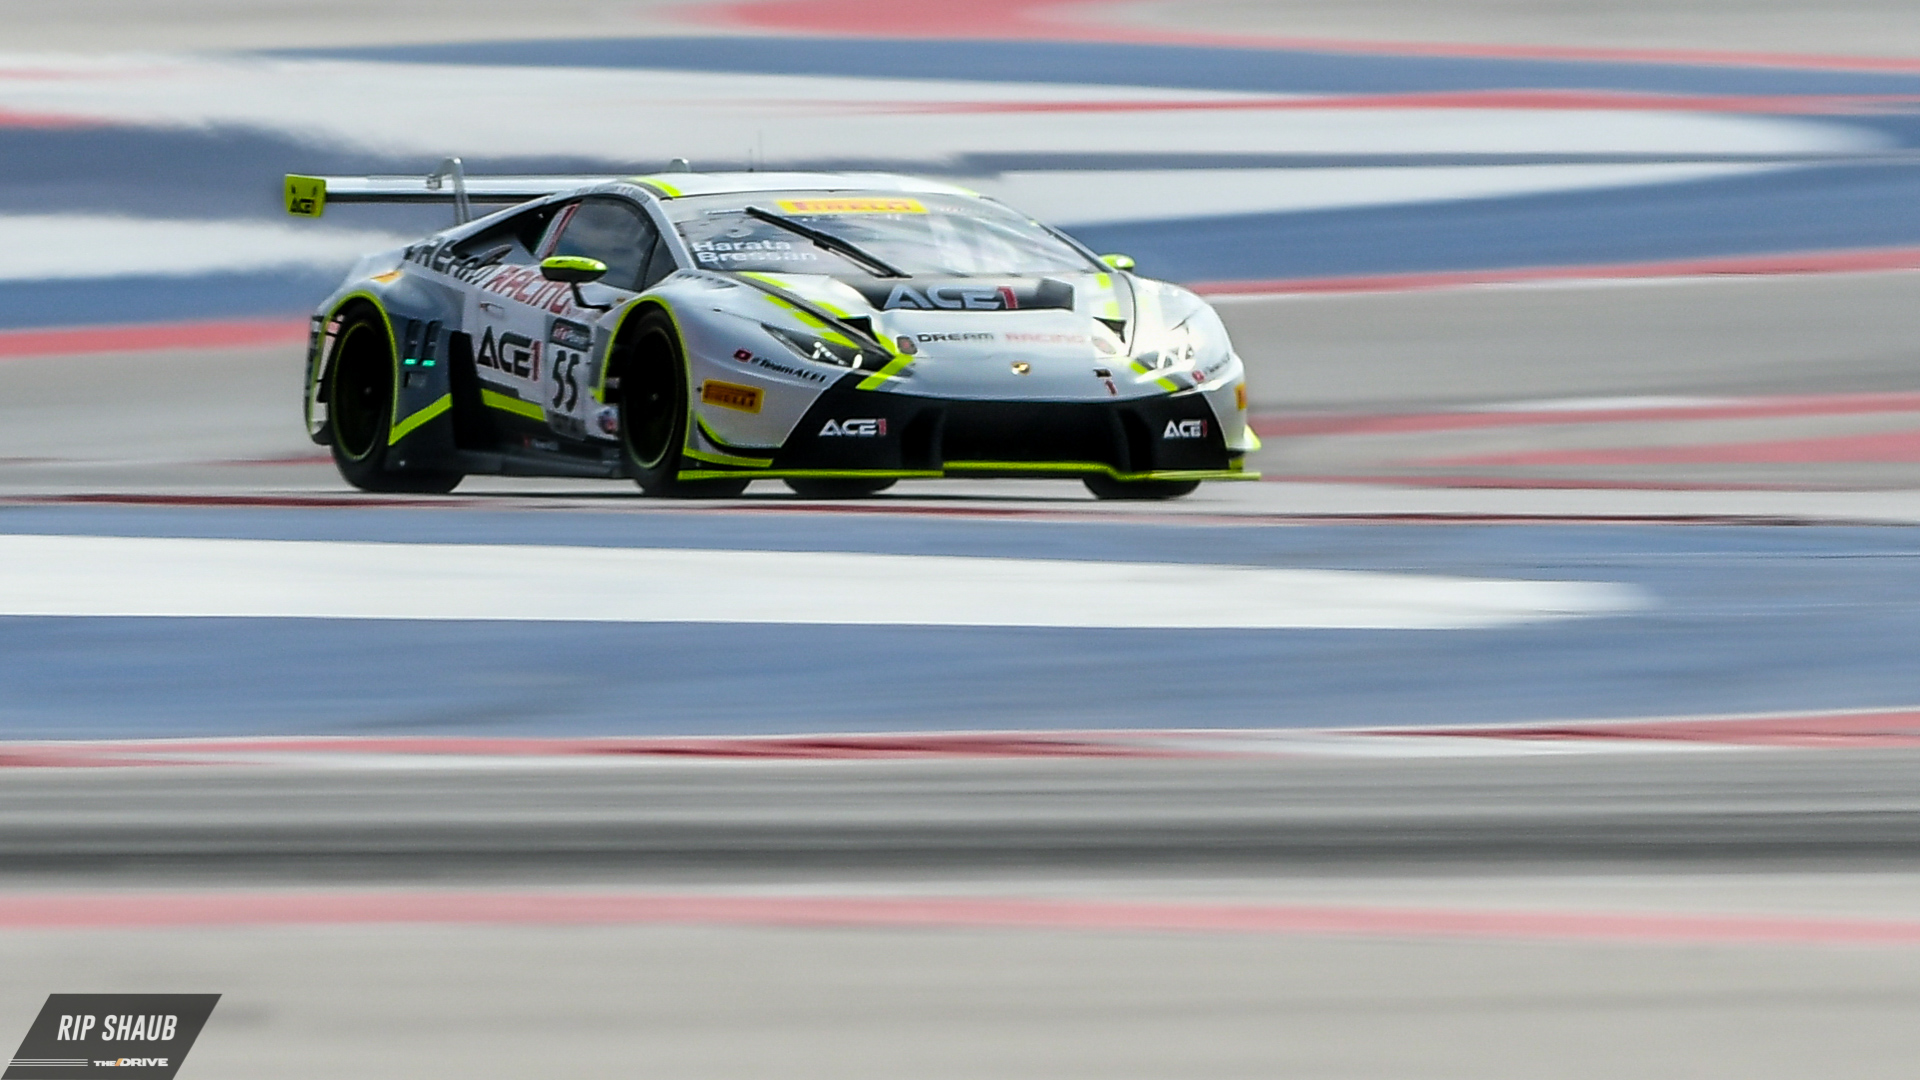 Pwc At Cota The Gt Class Cars Drive Go Back Gallery For Series Circuits Formulas Dream Racing And Ace 1 Brought Their Striking Lamborghini Huracan Gt3 To With Drivers Yuki Harata Alessandro Bressan